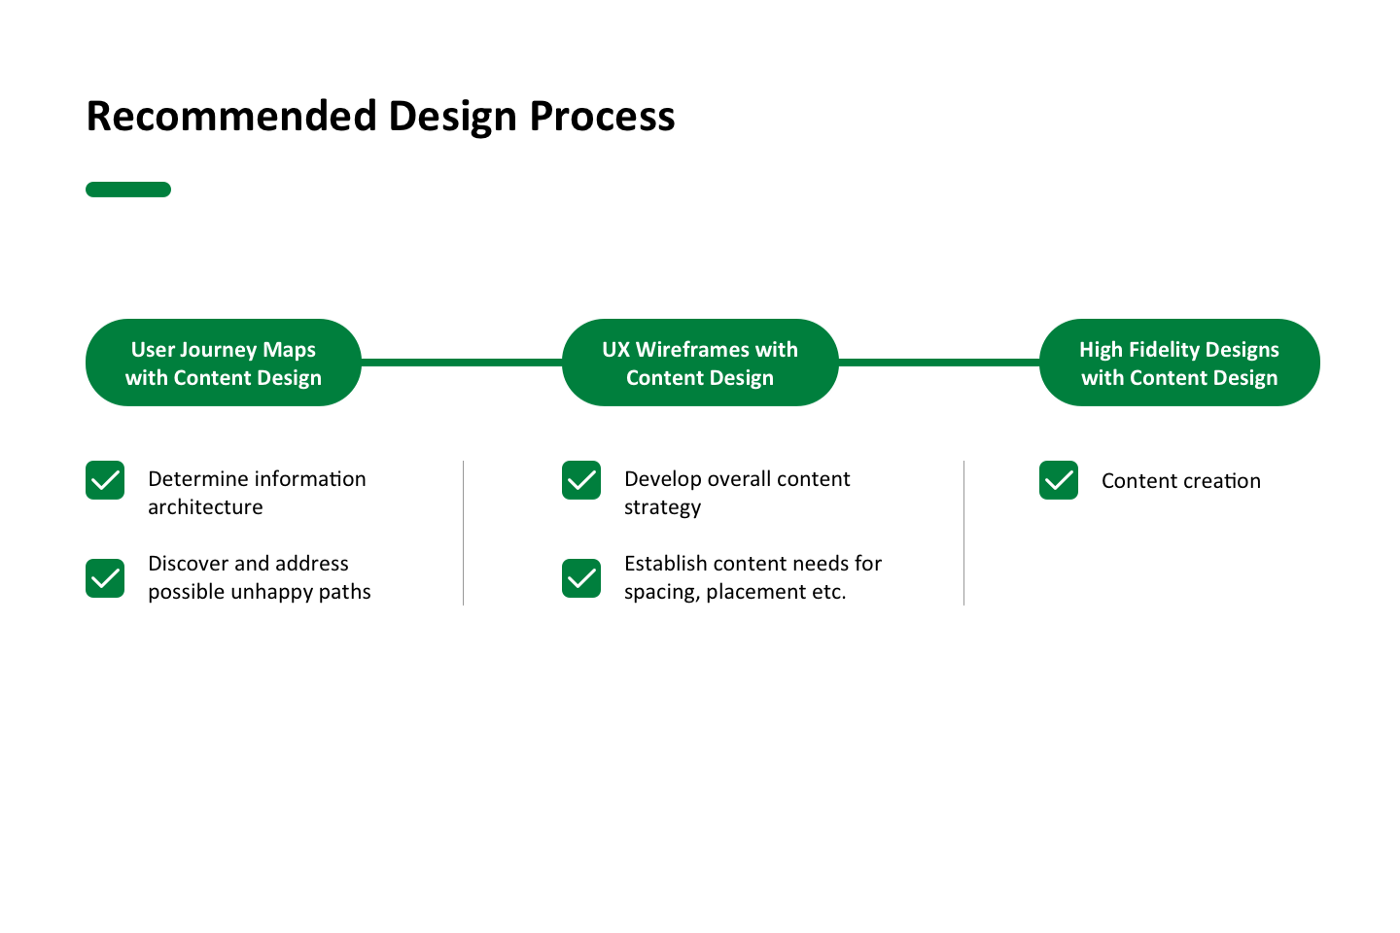 In our recommended process, a UX writer or content designer is present for user journey maps, UX wireframes and high fidelity designs. This helps avoid rework, compromised work and expansions to timelines and budget. It also gives the UX writer opportunities to determine information architecture, reduce unhappy paths, develop a content strategy, and establish content needs with the team before actually creating the content.